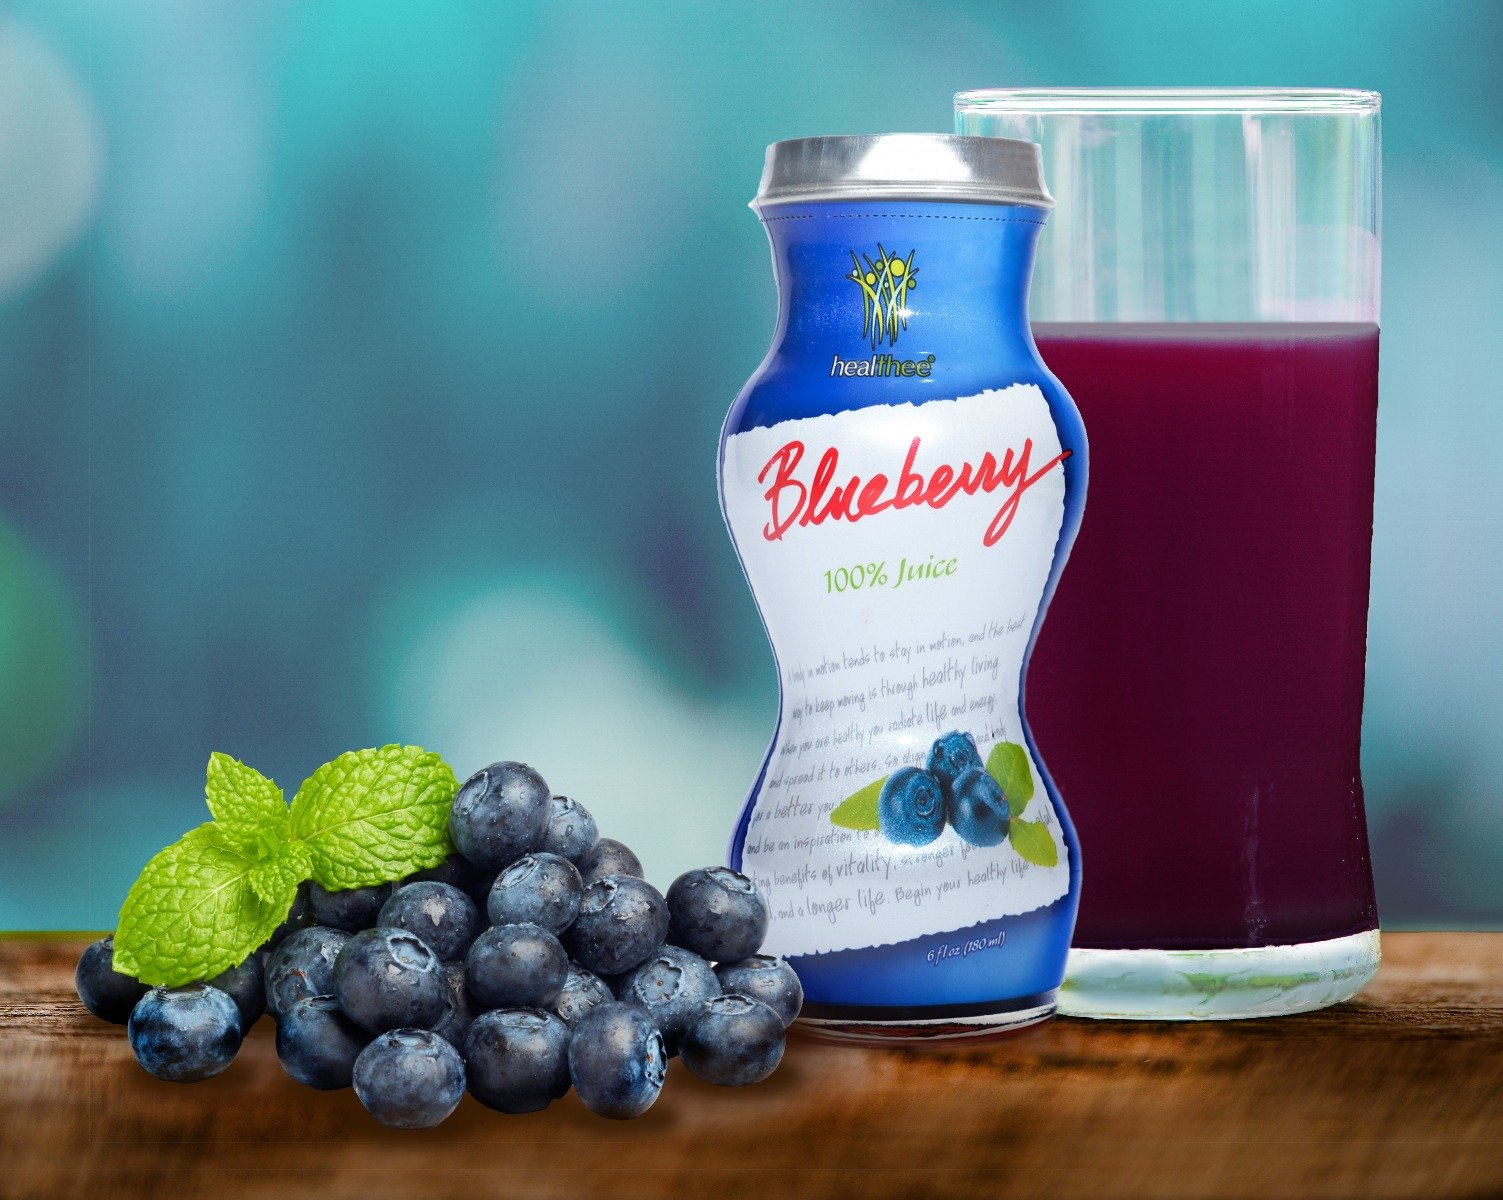 Healthee Blueberry Juice - Natural With No Preservatives, Sugars, or